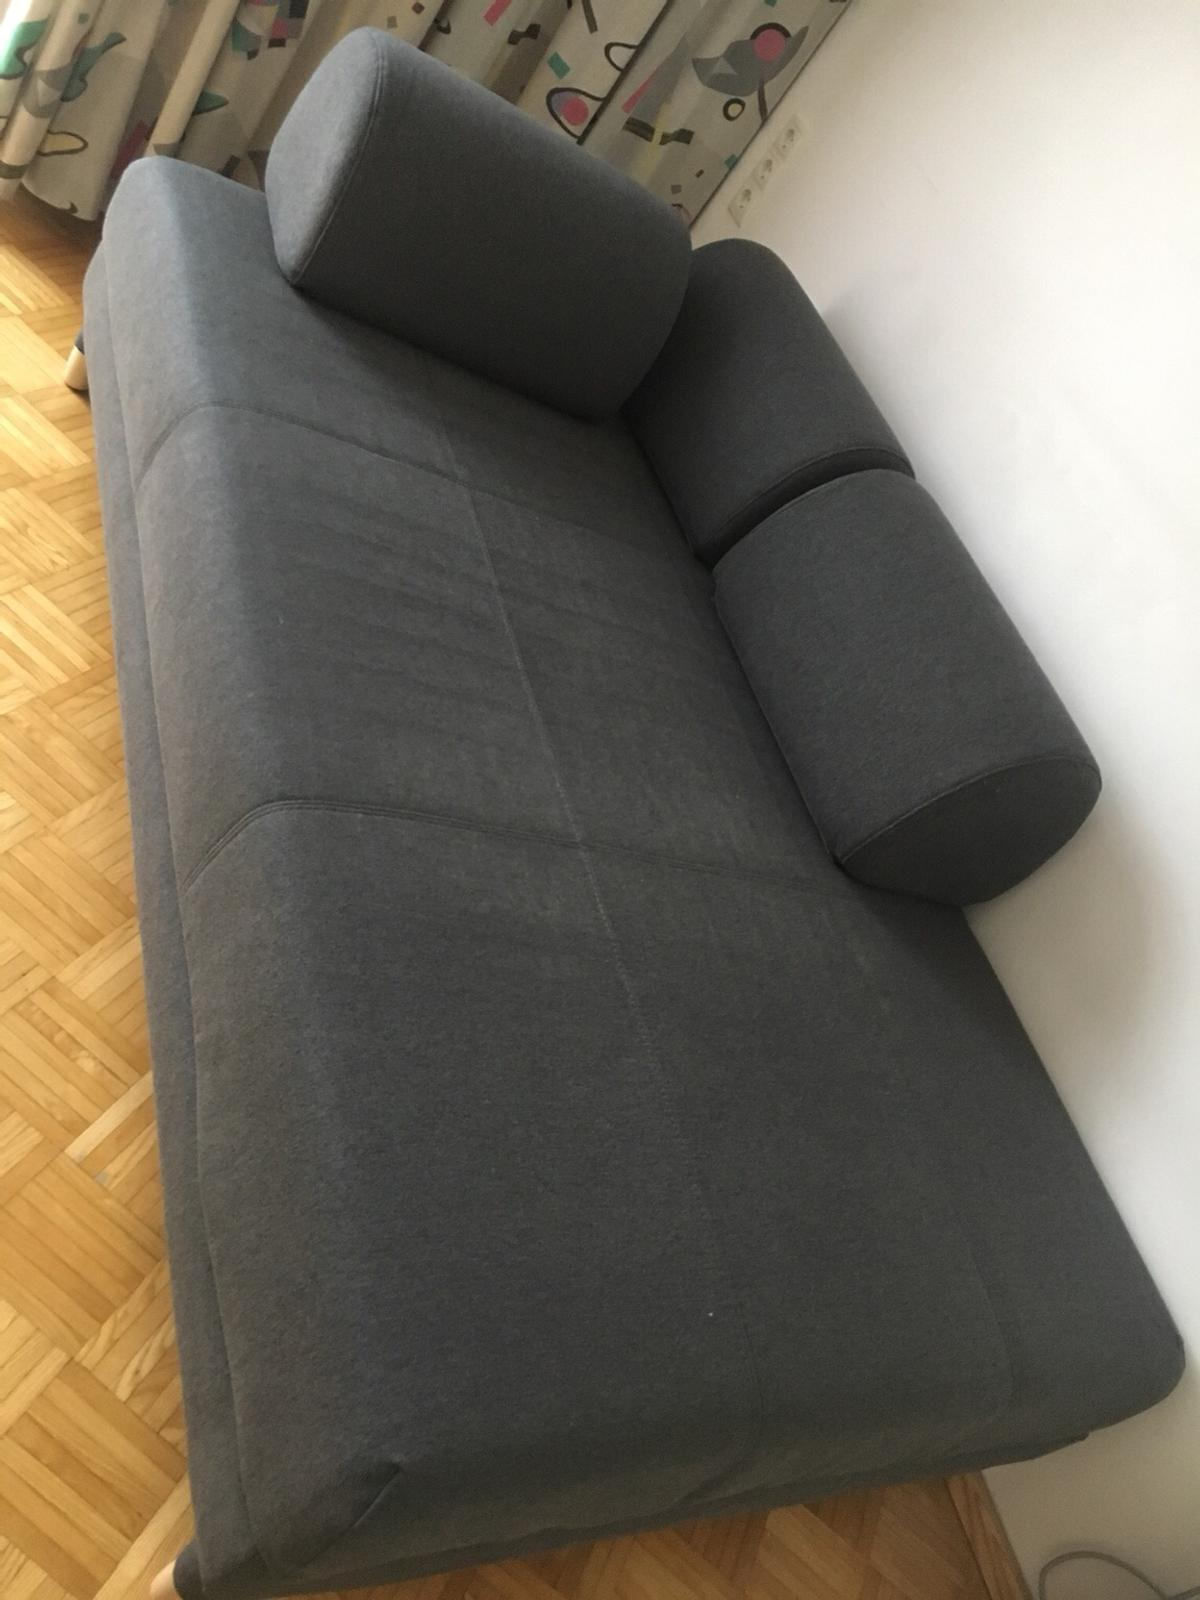 Schlafcouch 140x200 Ikea Schlafcouch Flottebe In 6020 Innsbruck For 320 00 For